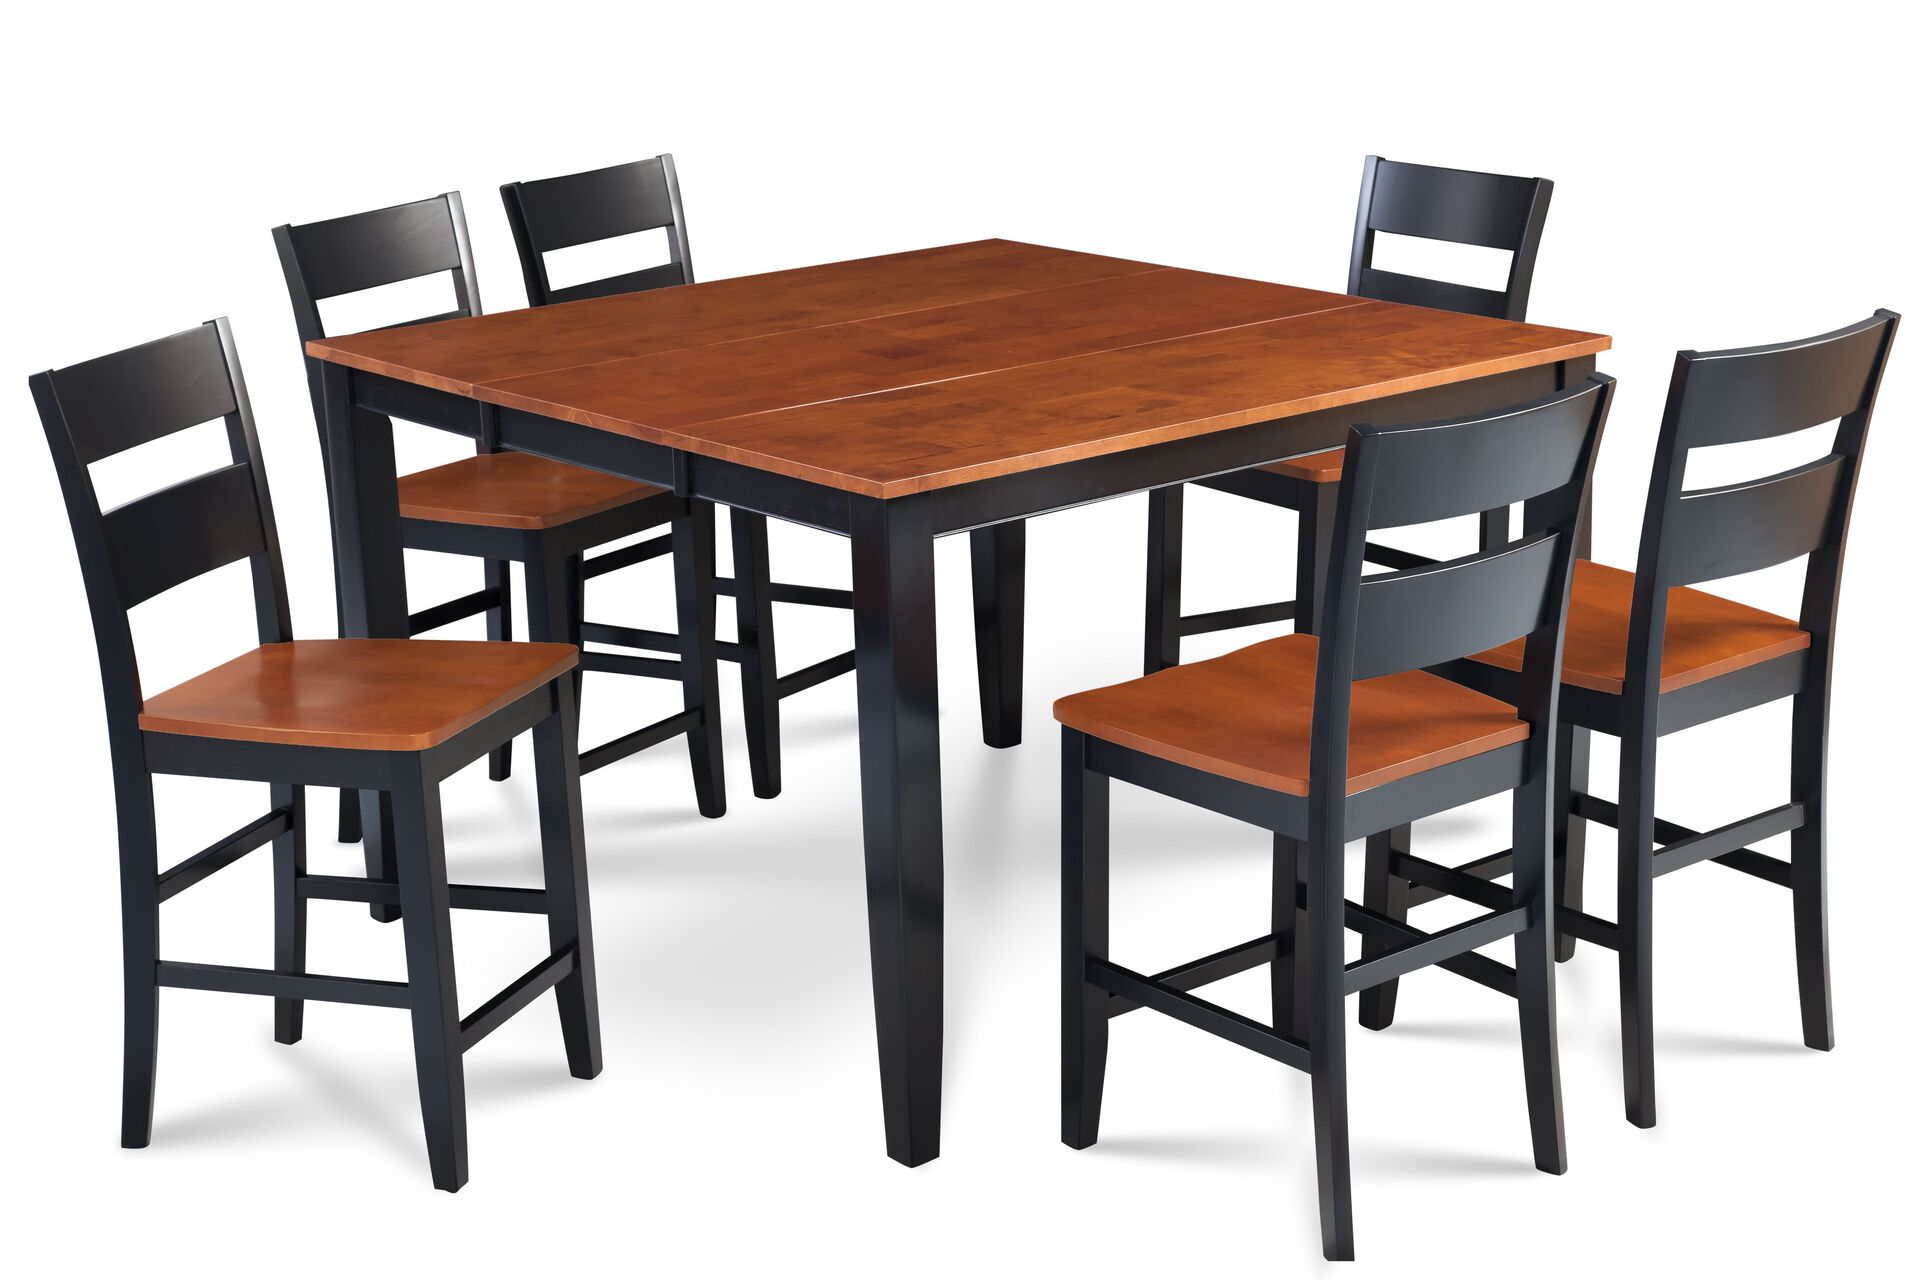 Chair Upholstered Table Dining Dining Set Sets Table Living Room House New Solid Wood Moving Sale Spring Winter Furniture Oregon Lake Oswego Portland Washington Seattle Vancouver Oak Cherry White Black Brown Contemporary